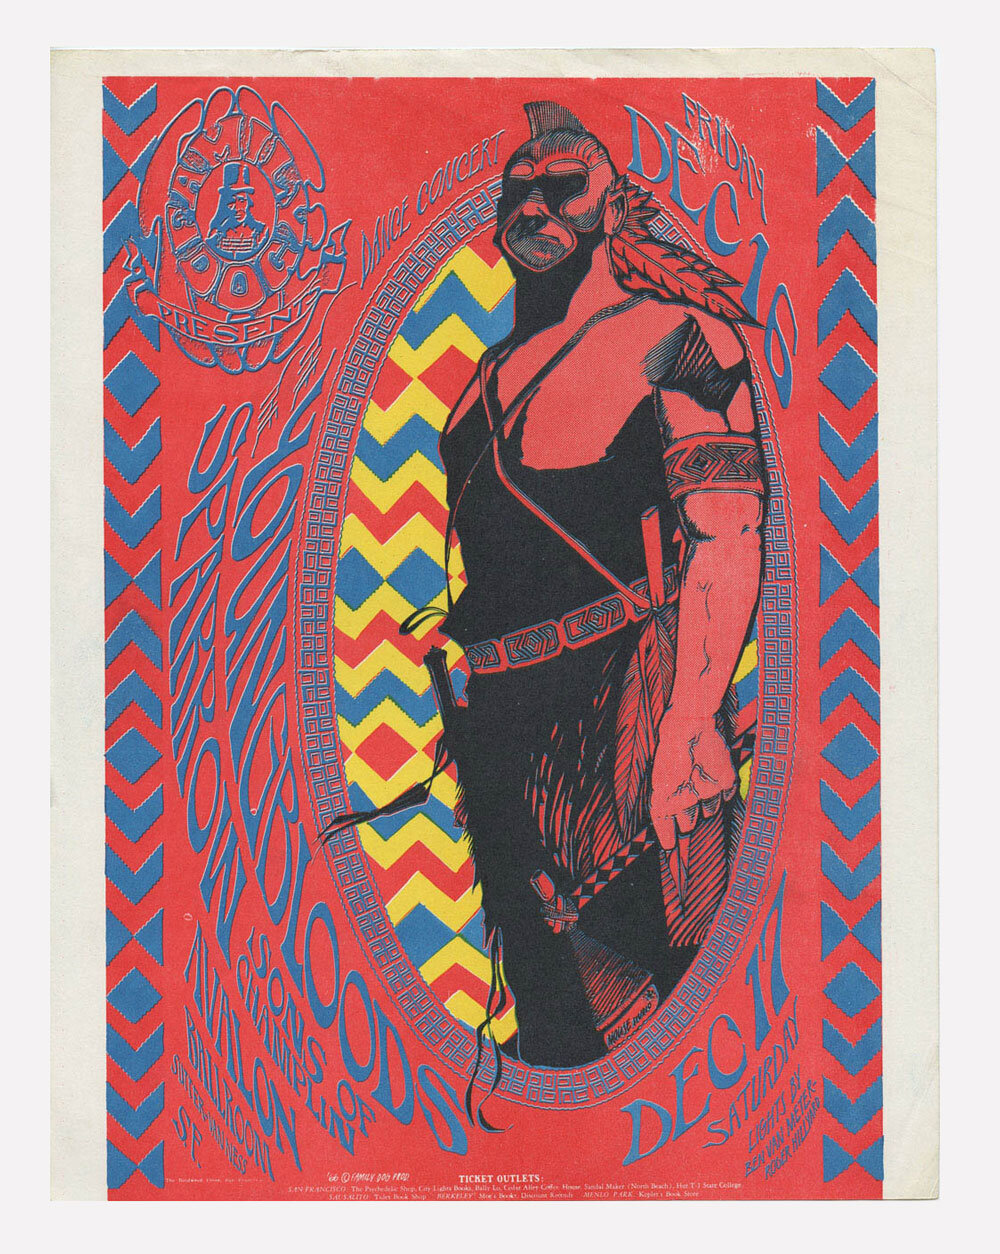 Family Dog 39 Handbill Redskin 1966 Dec 16 Youngbloods Sparrow The Sons of Champlin